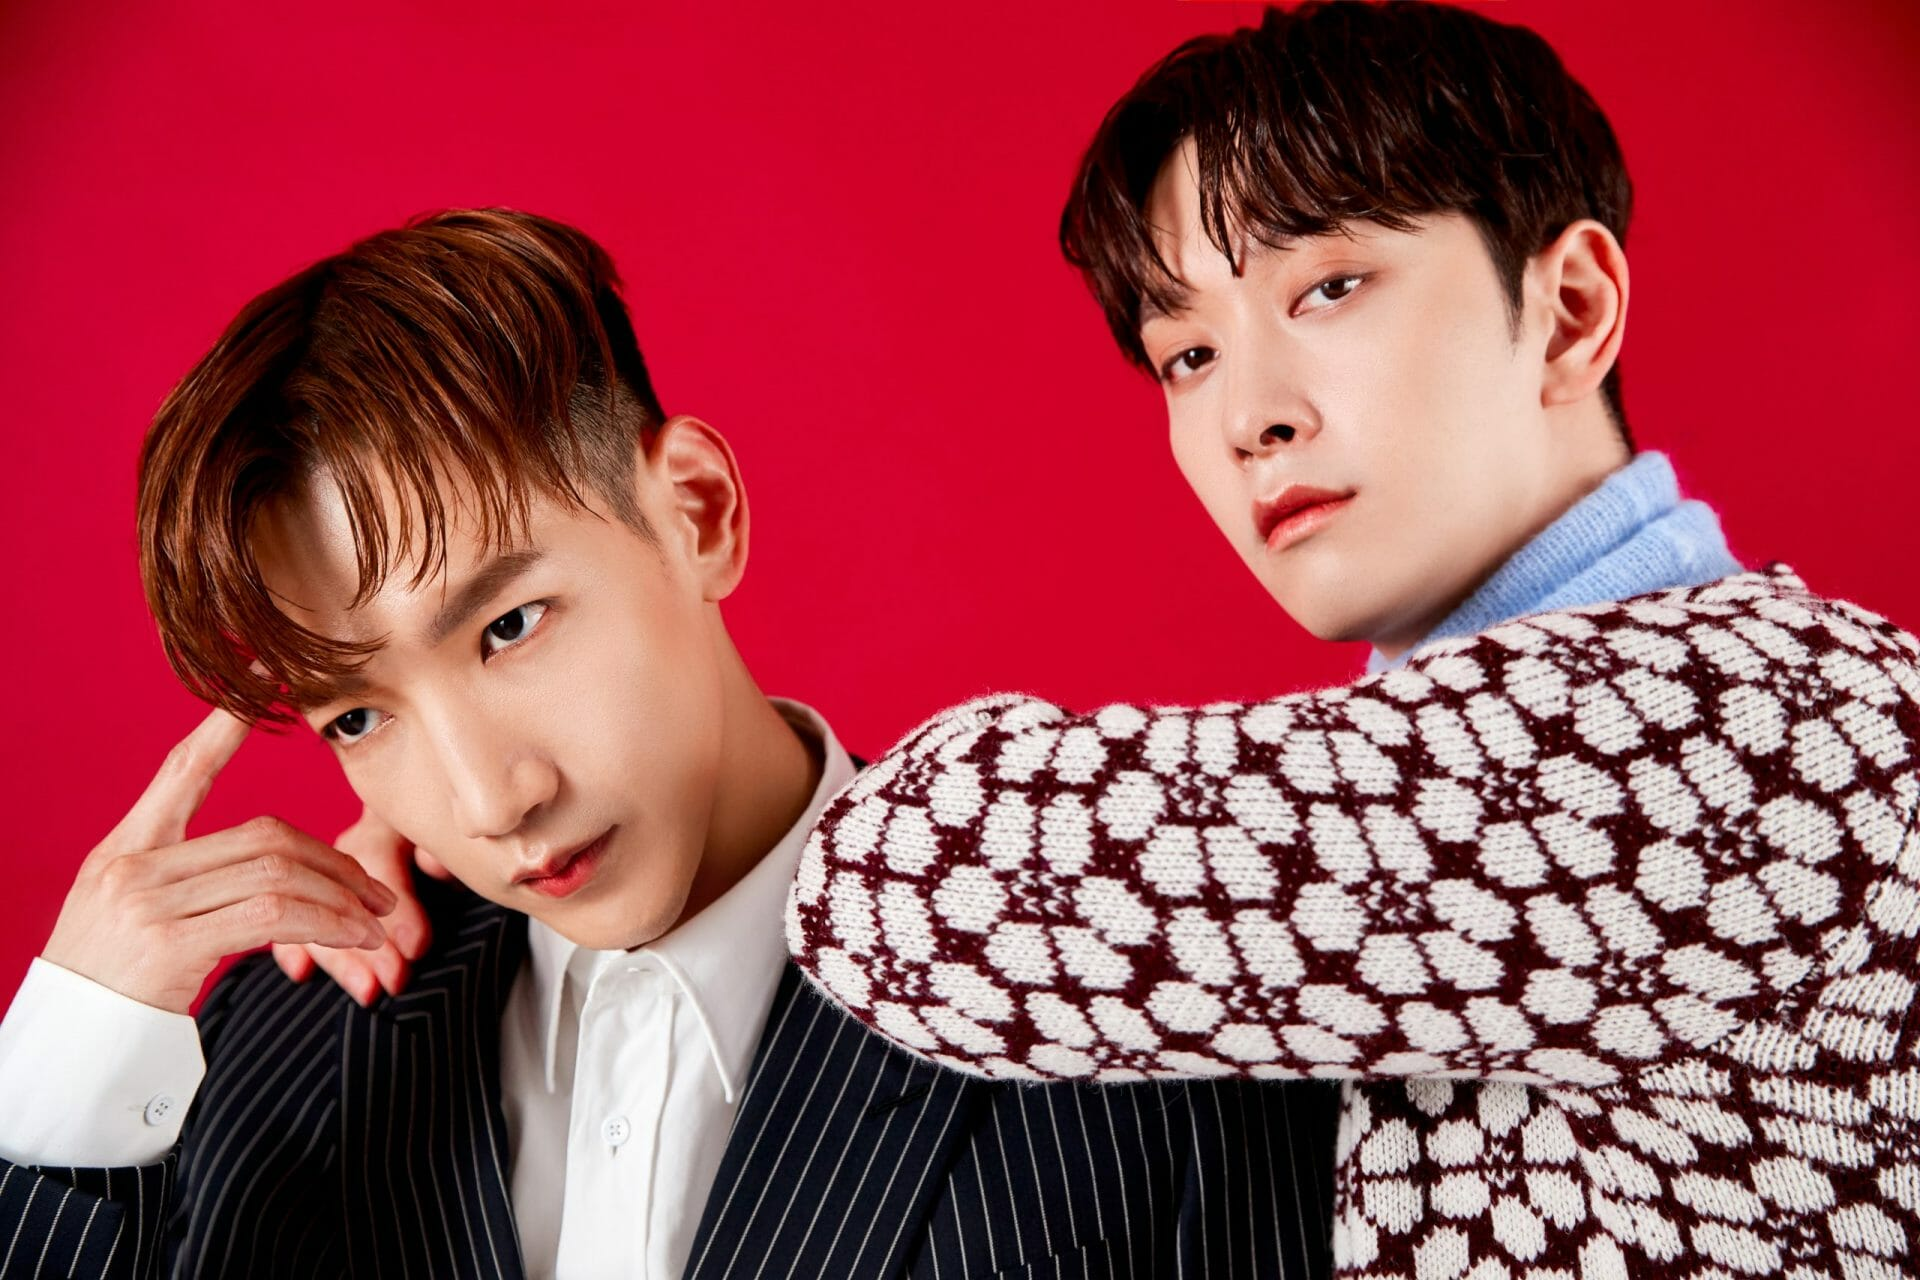 Our October 2021 Cover Stars JUN. K and CHANSUNG of 2PM On Their Comeback